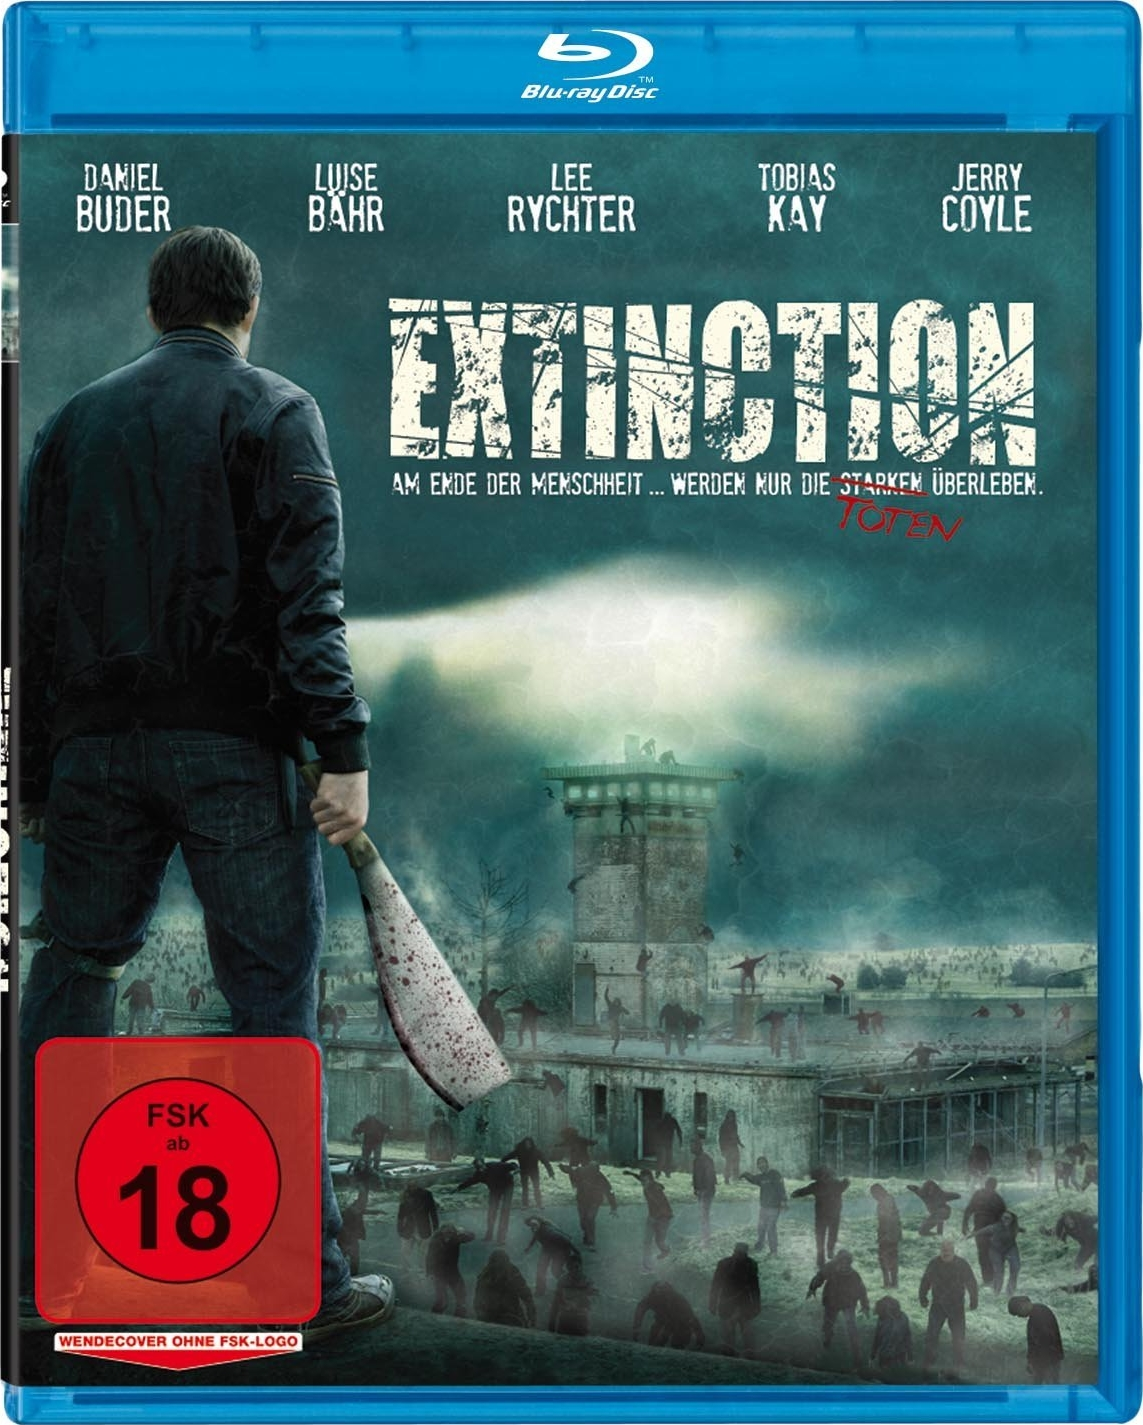 Extinction The G.M.O Chronicles 2011 3D 1080p Mkv Half-Sbs